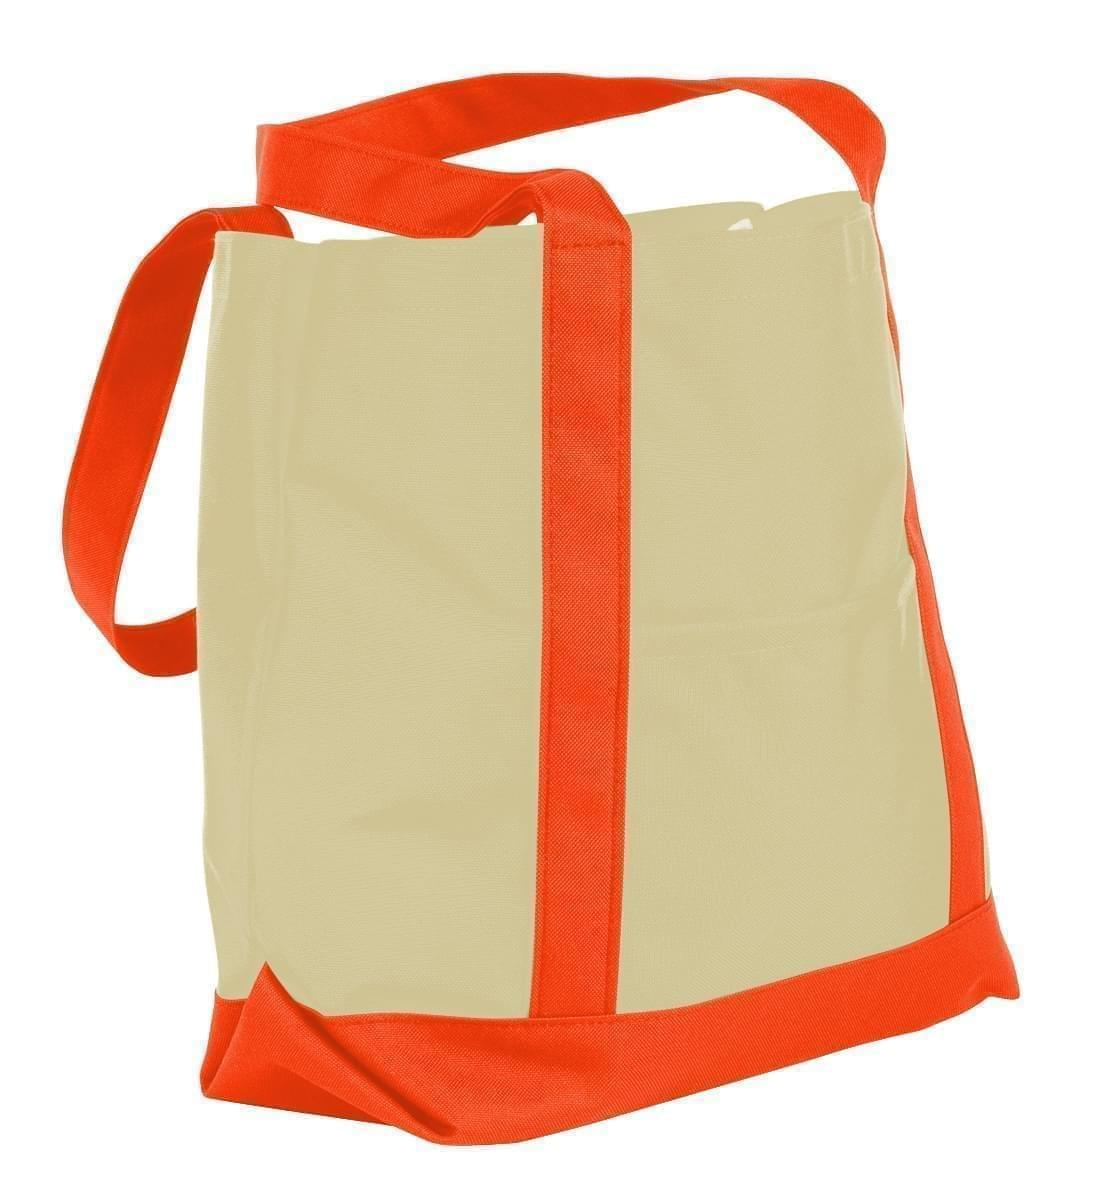 USA Made Canvas Fashion Tote Bags, Natural-Orange, XAACL1UAKJ